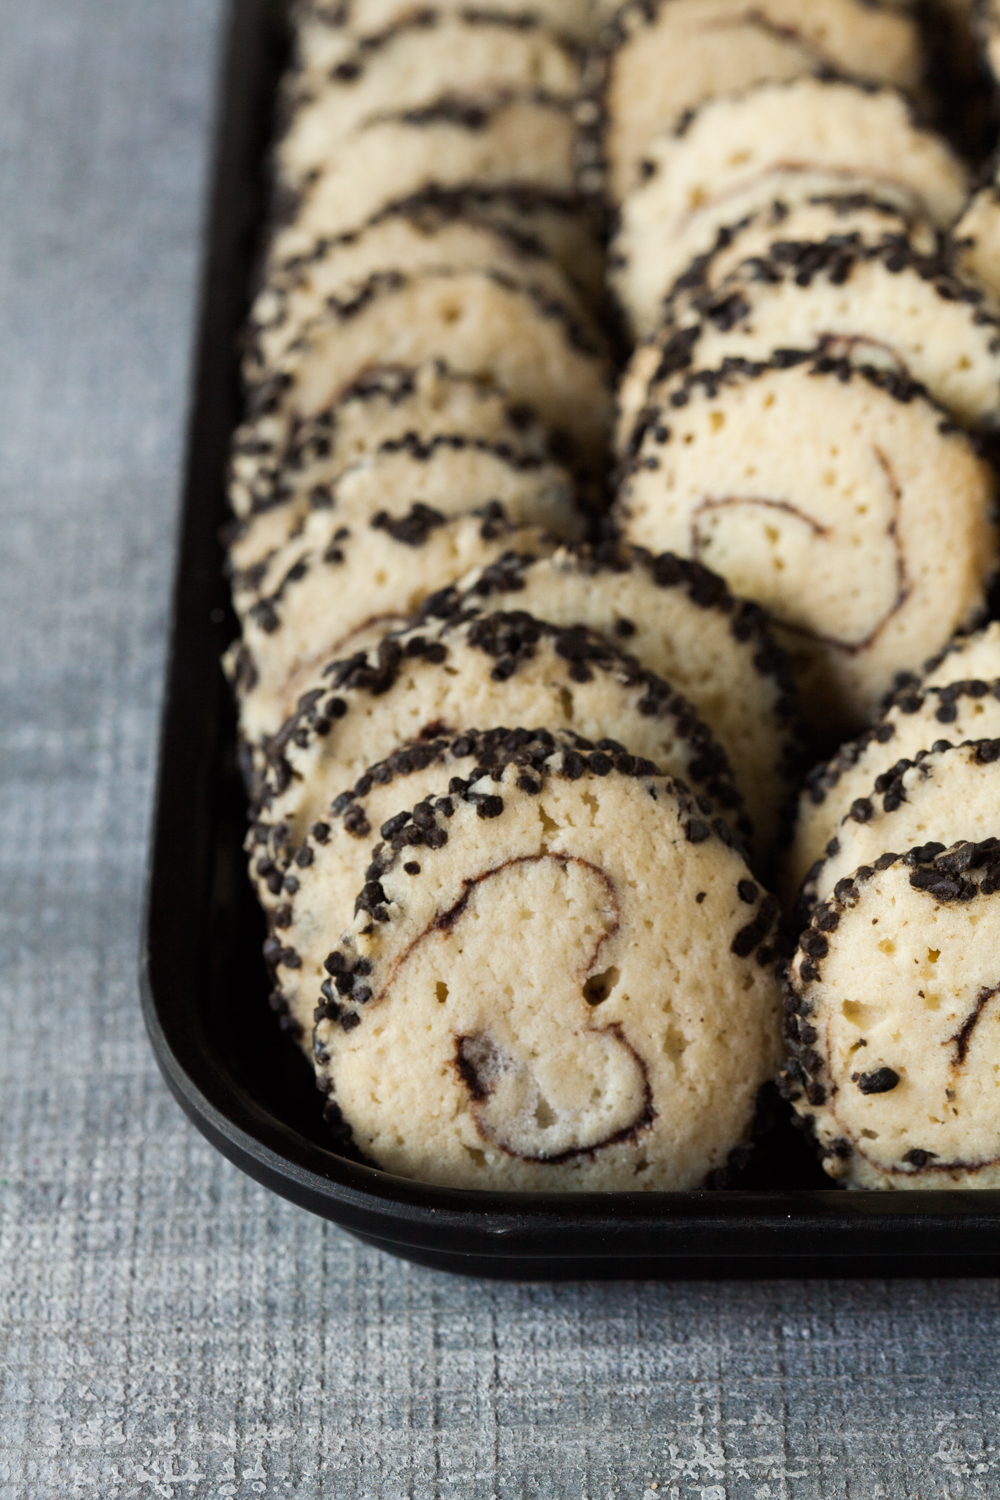 Chinese Cookie:  Shortbread cookie rolled with chocolate ganache in the center and chocolate sprinkles on the outside.